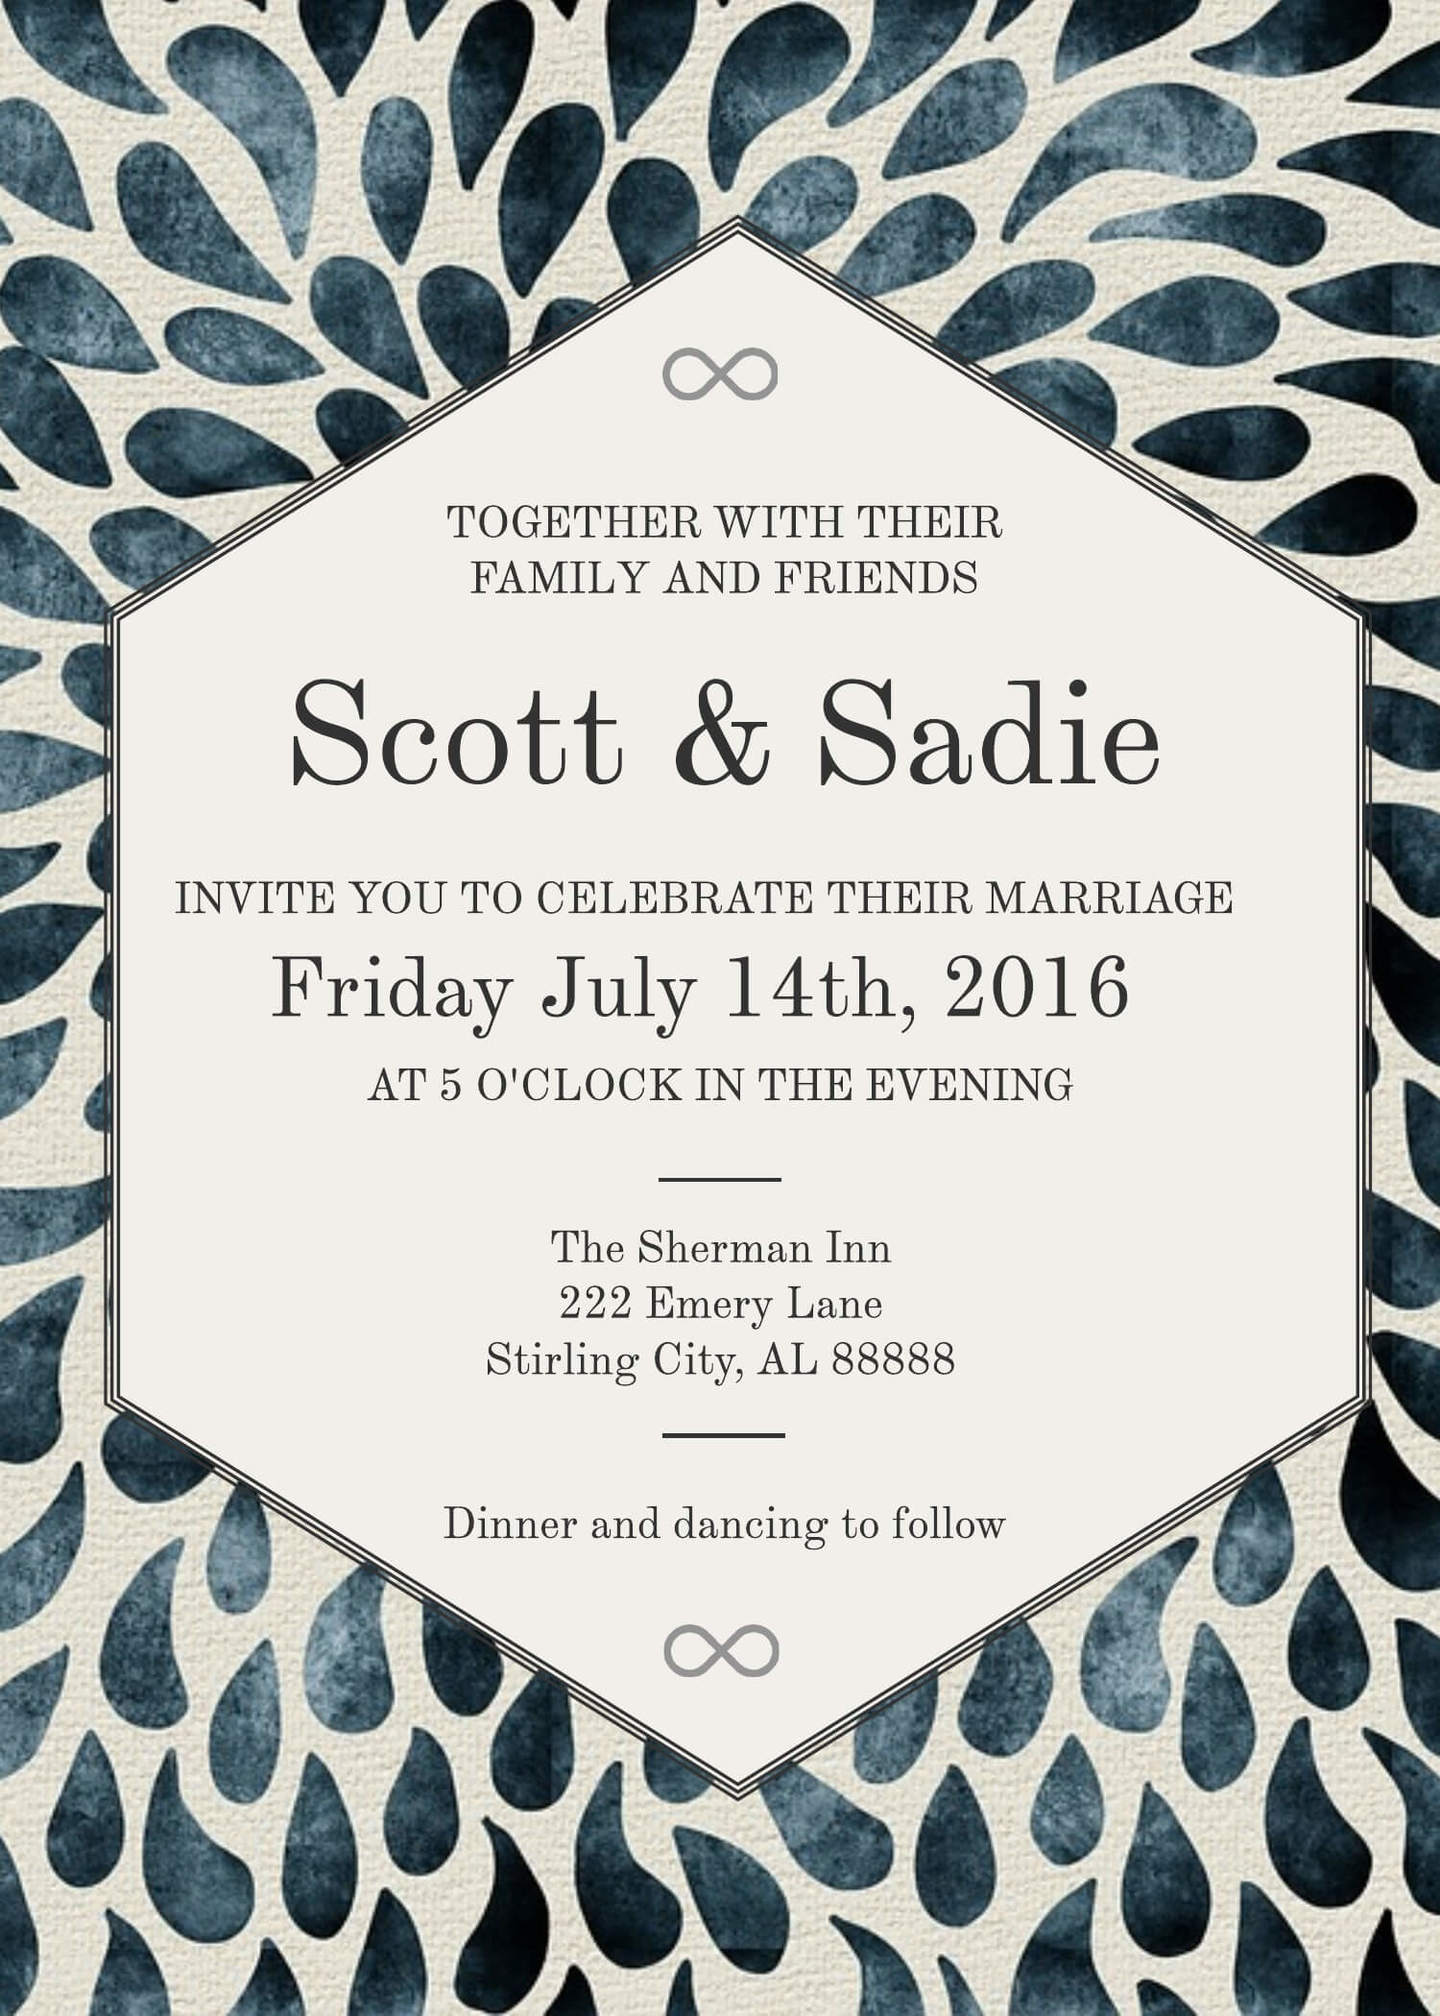 rsvp wedding invitation 5x7